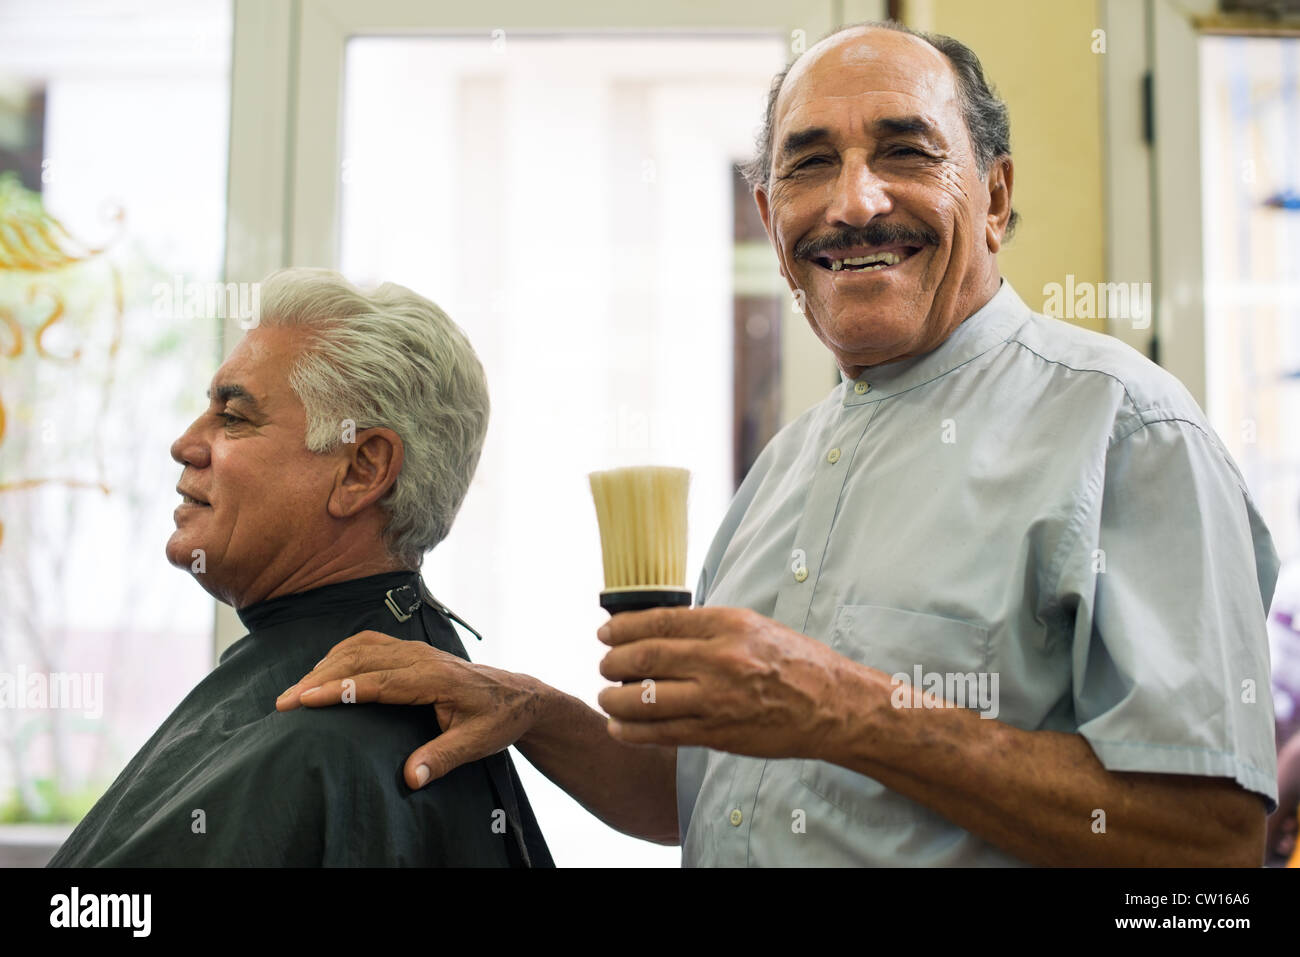 Old barber holding brush for talco and smiling to camera in old fashion barber shop - Stock Image